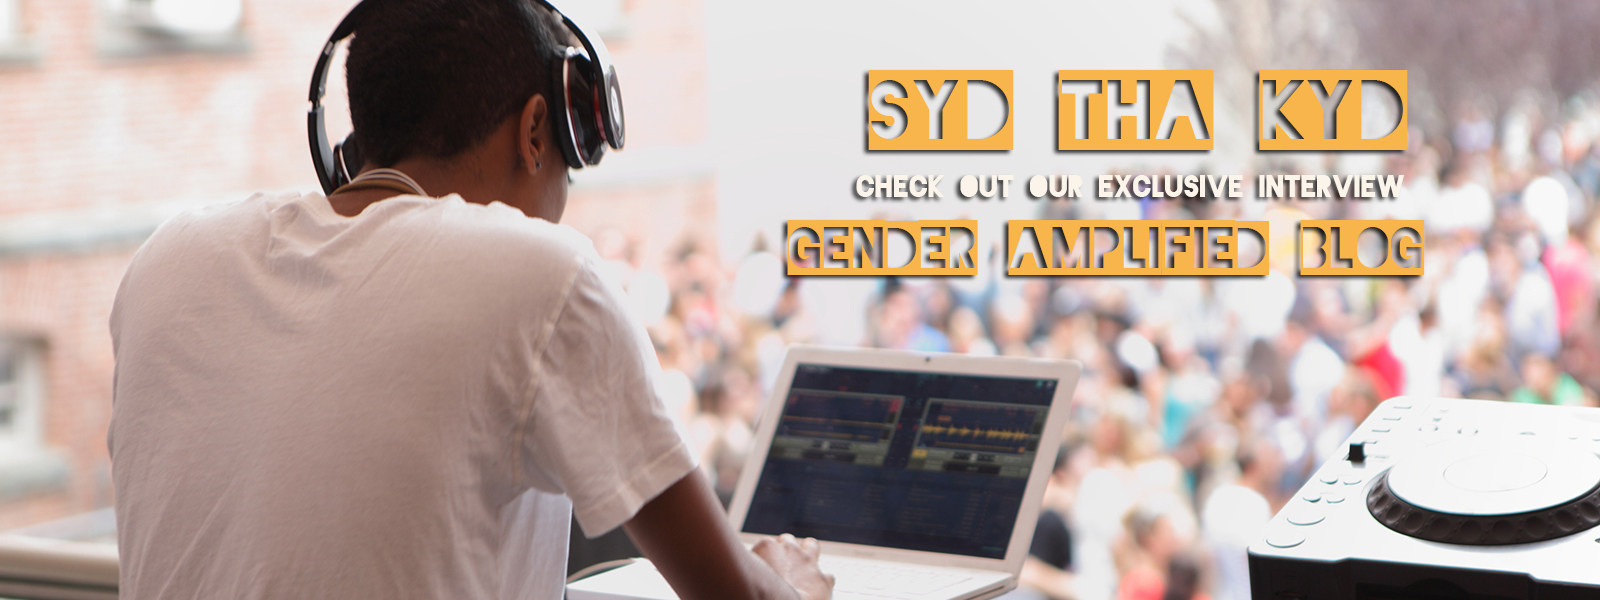 Syd Tha Kyd Interview